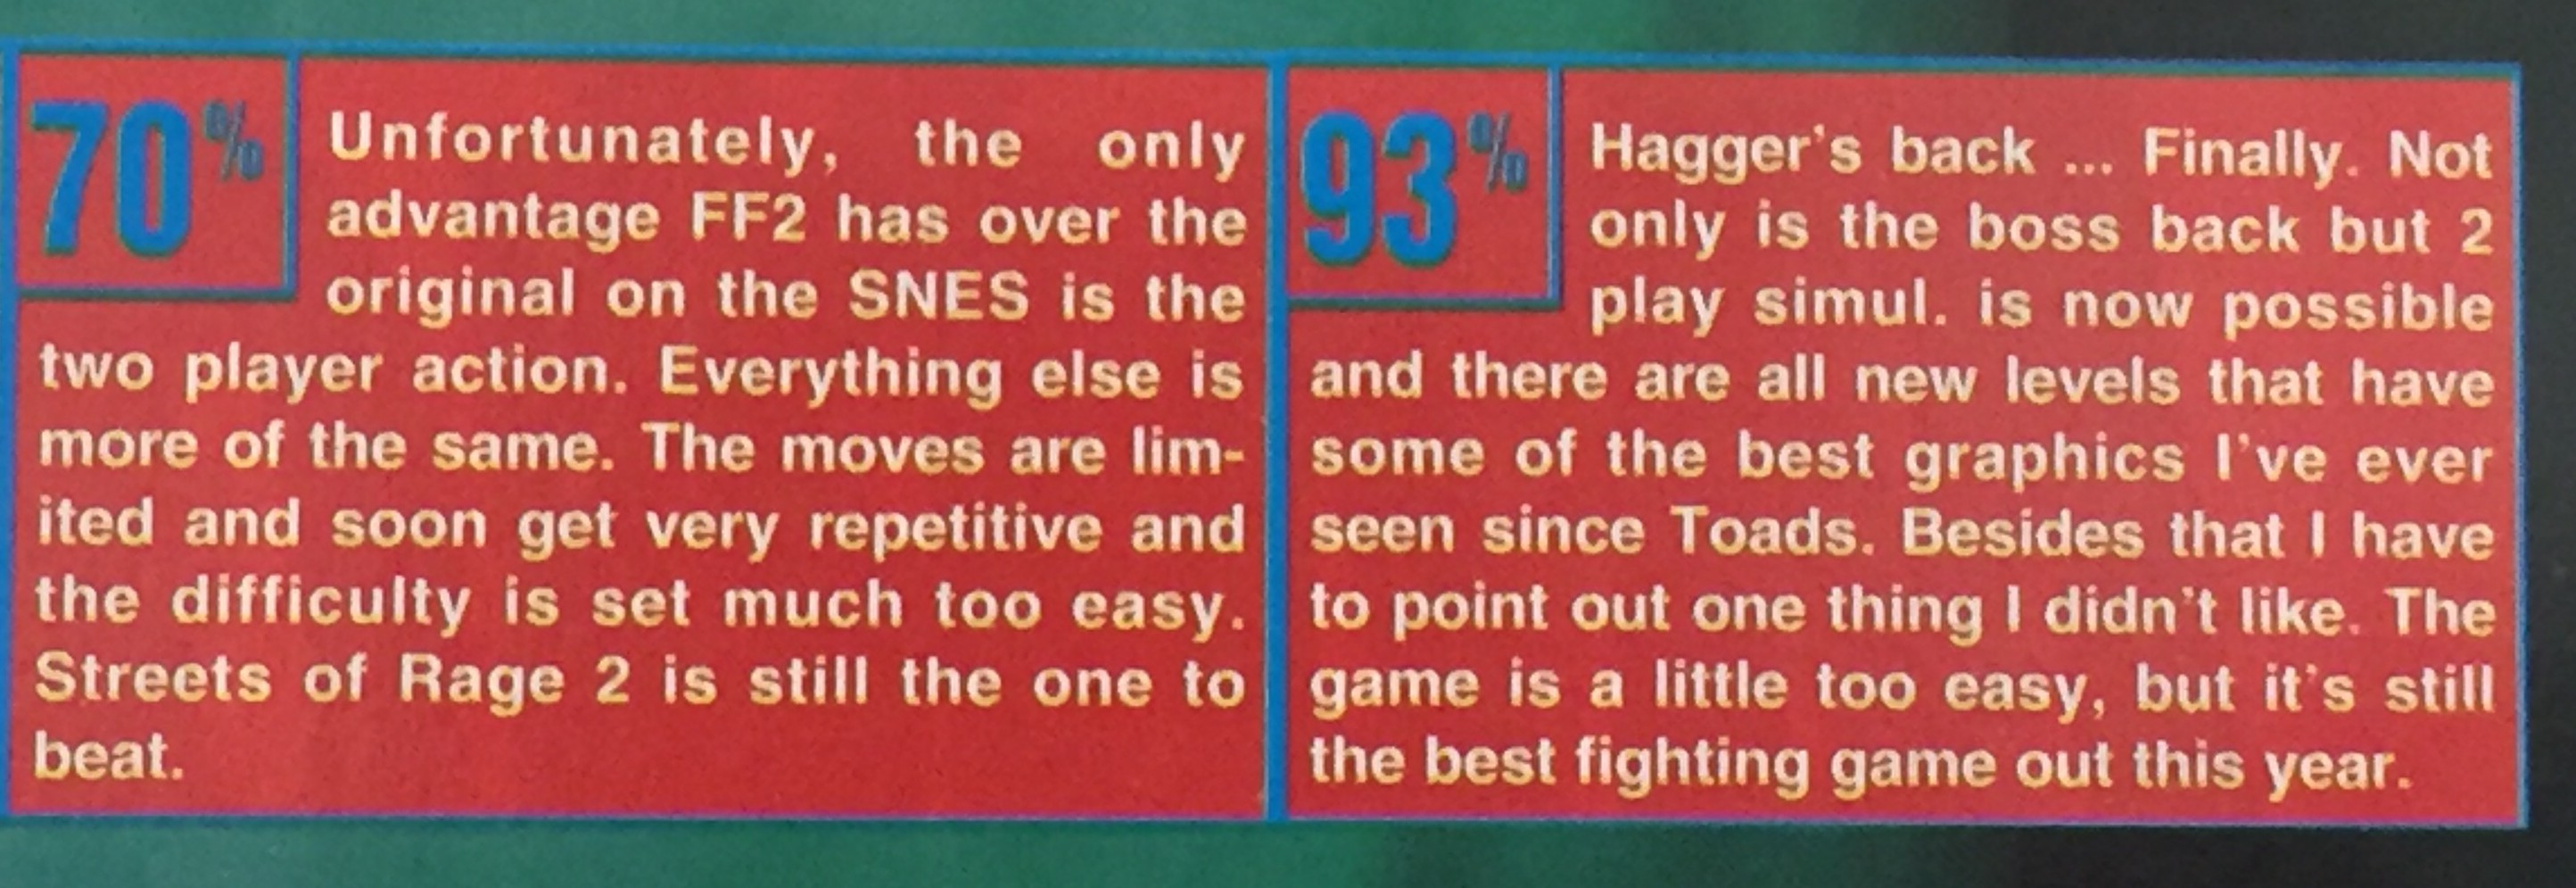 One of the largest scoring gaps in GameFan history